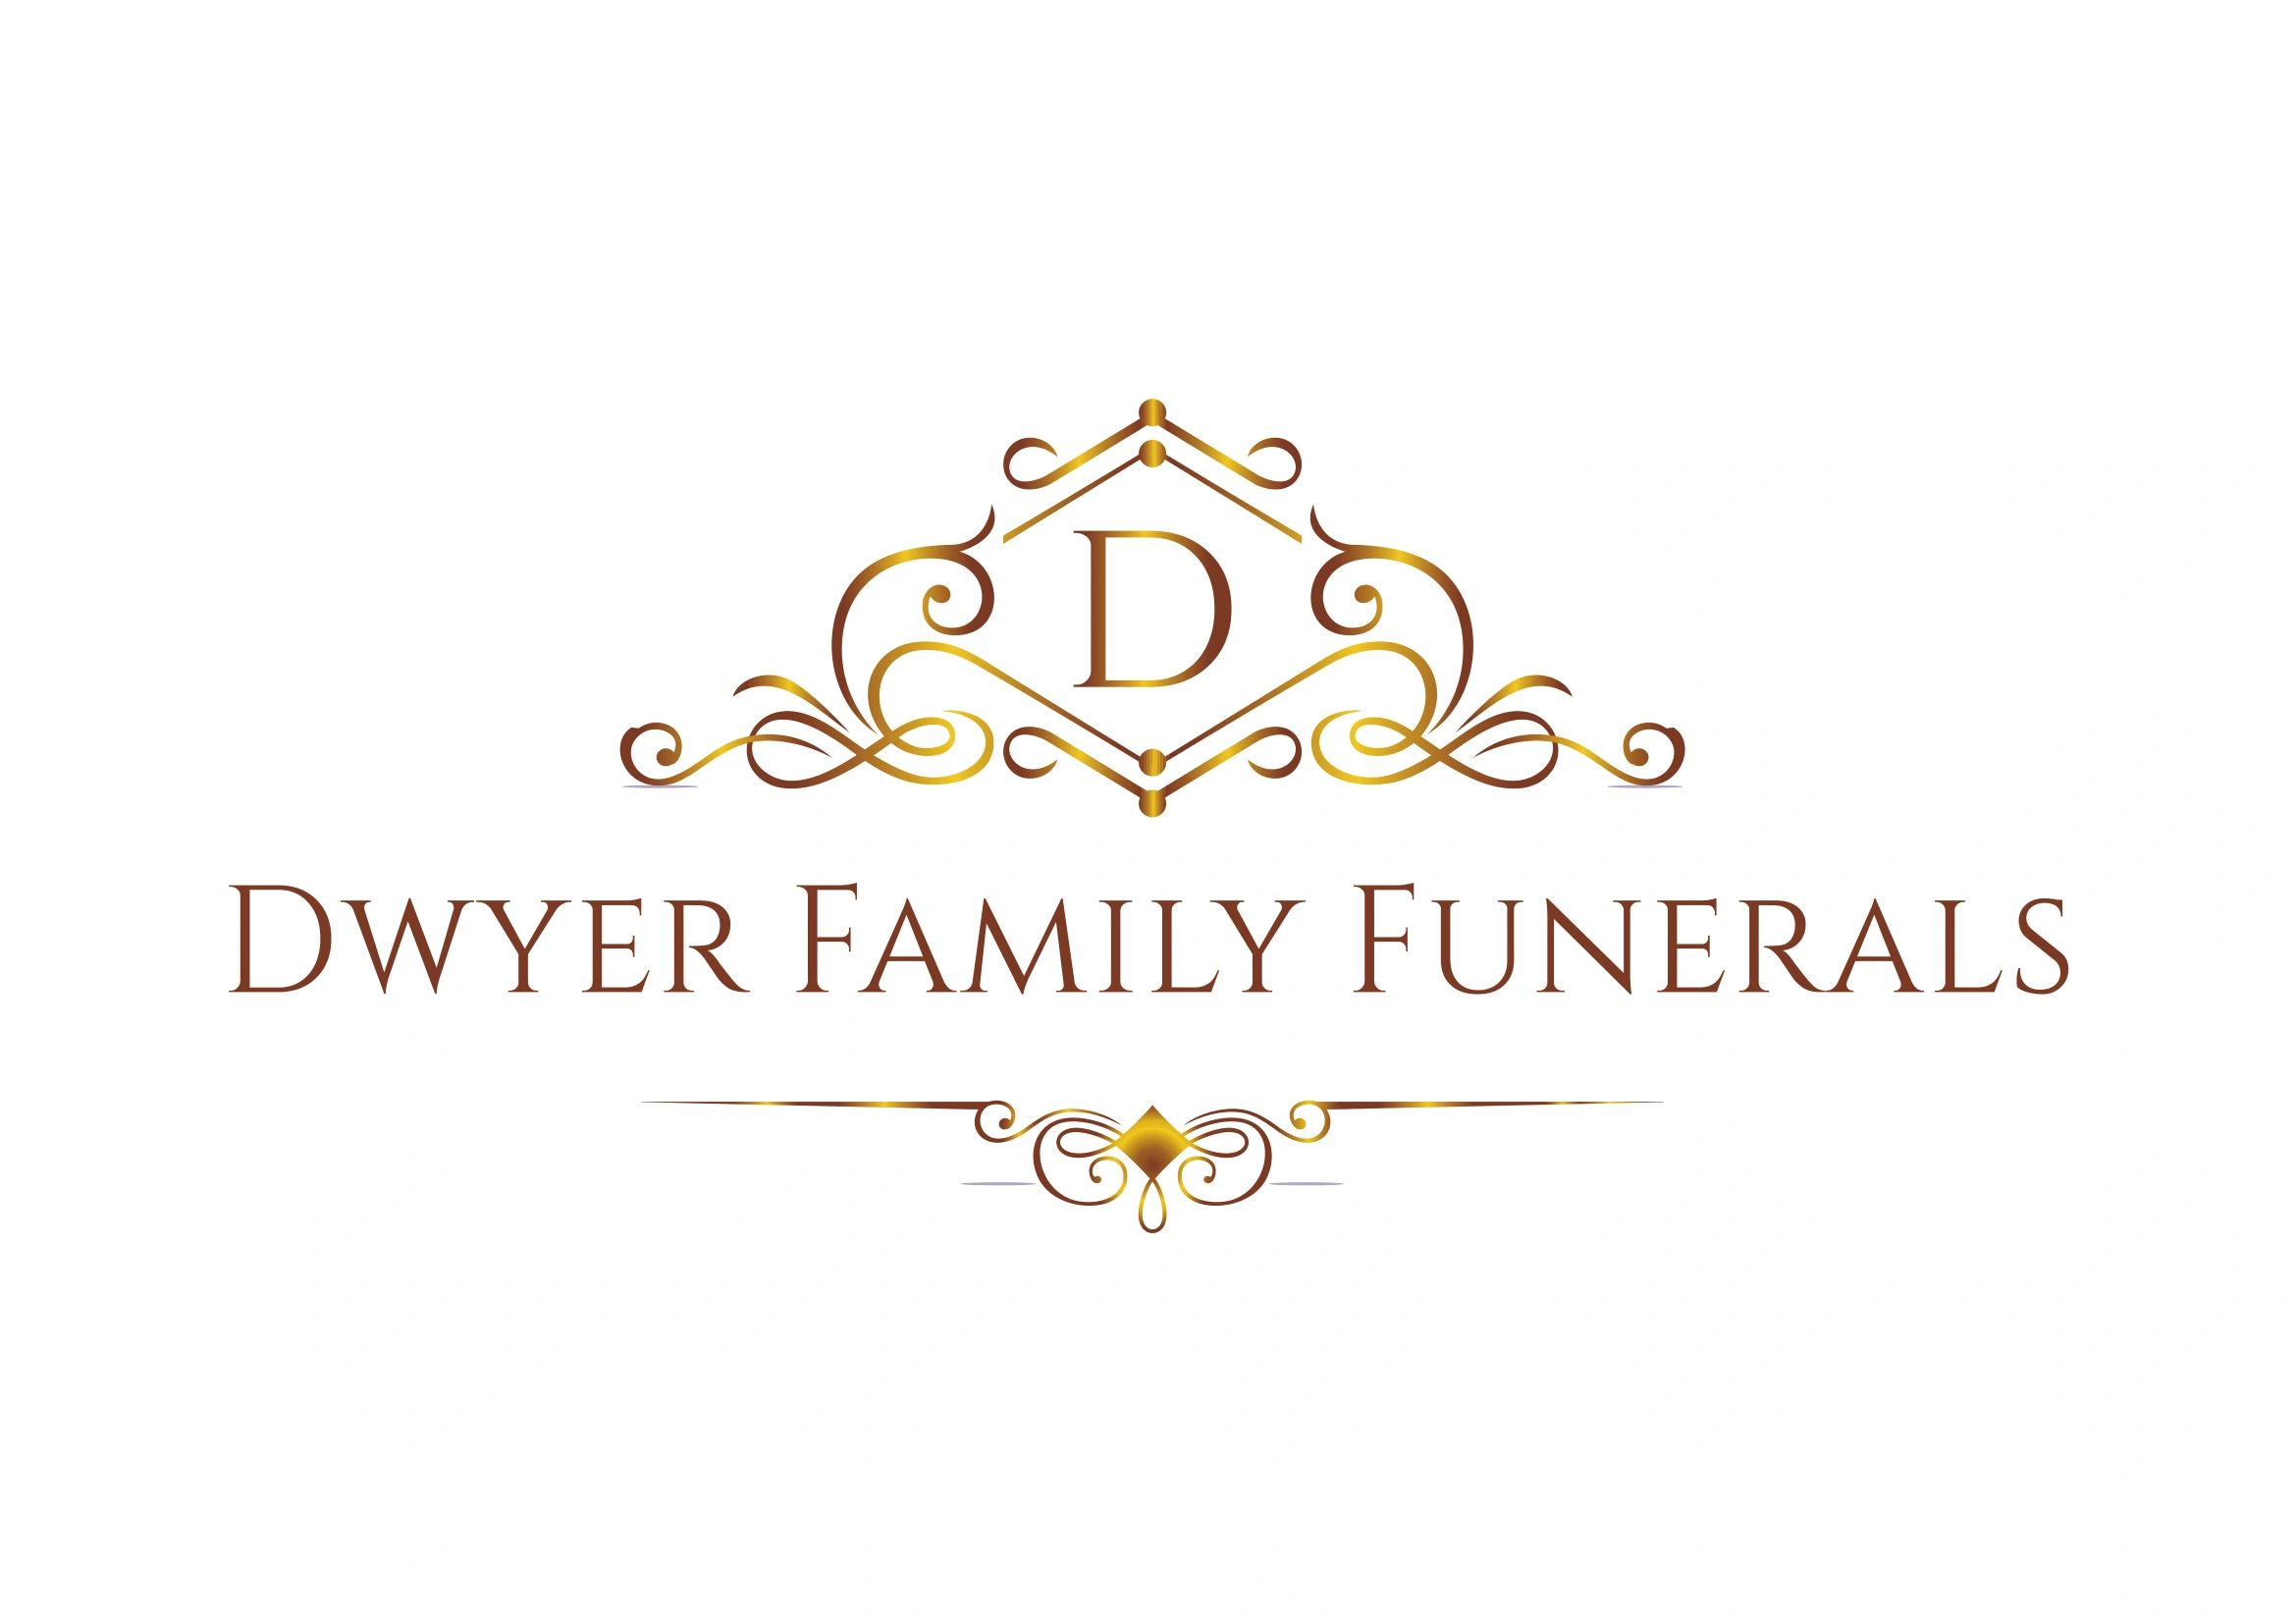 Dwyer Family Funerals